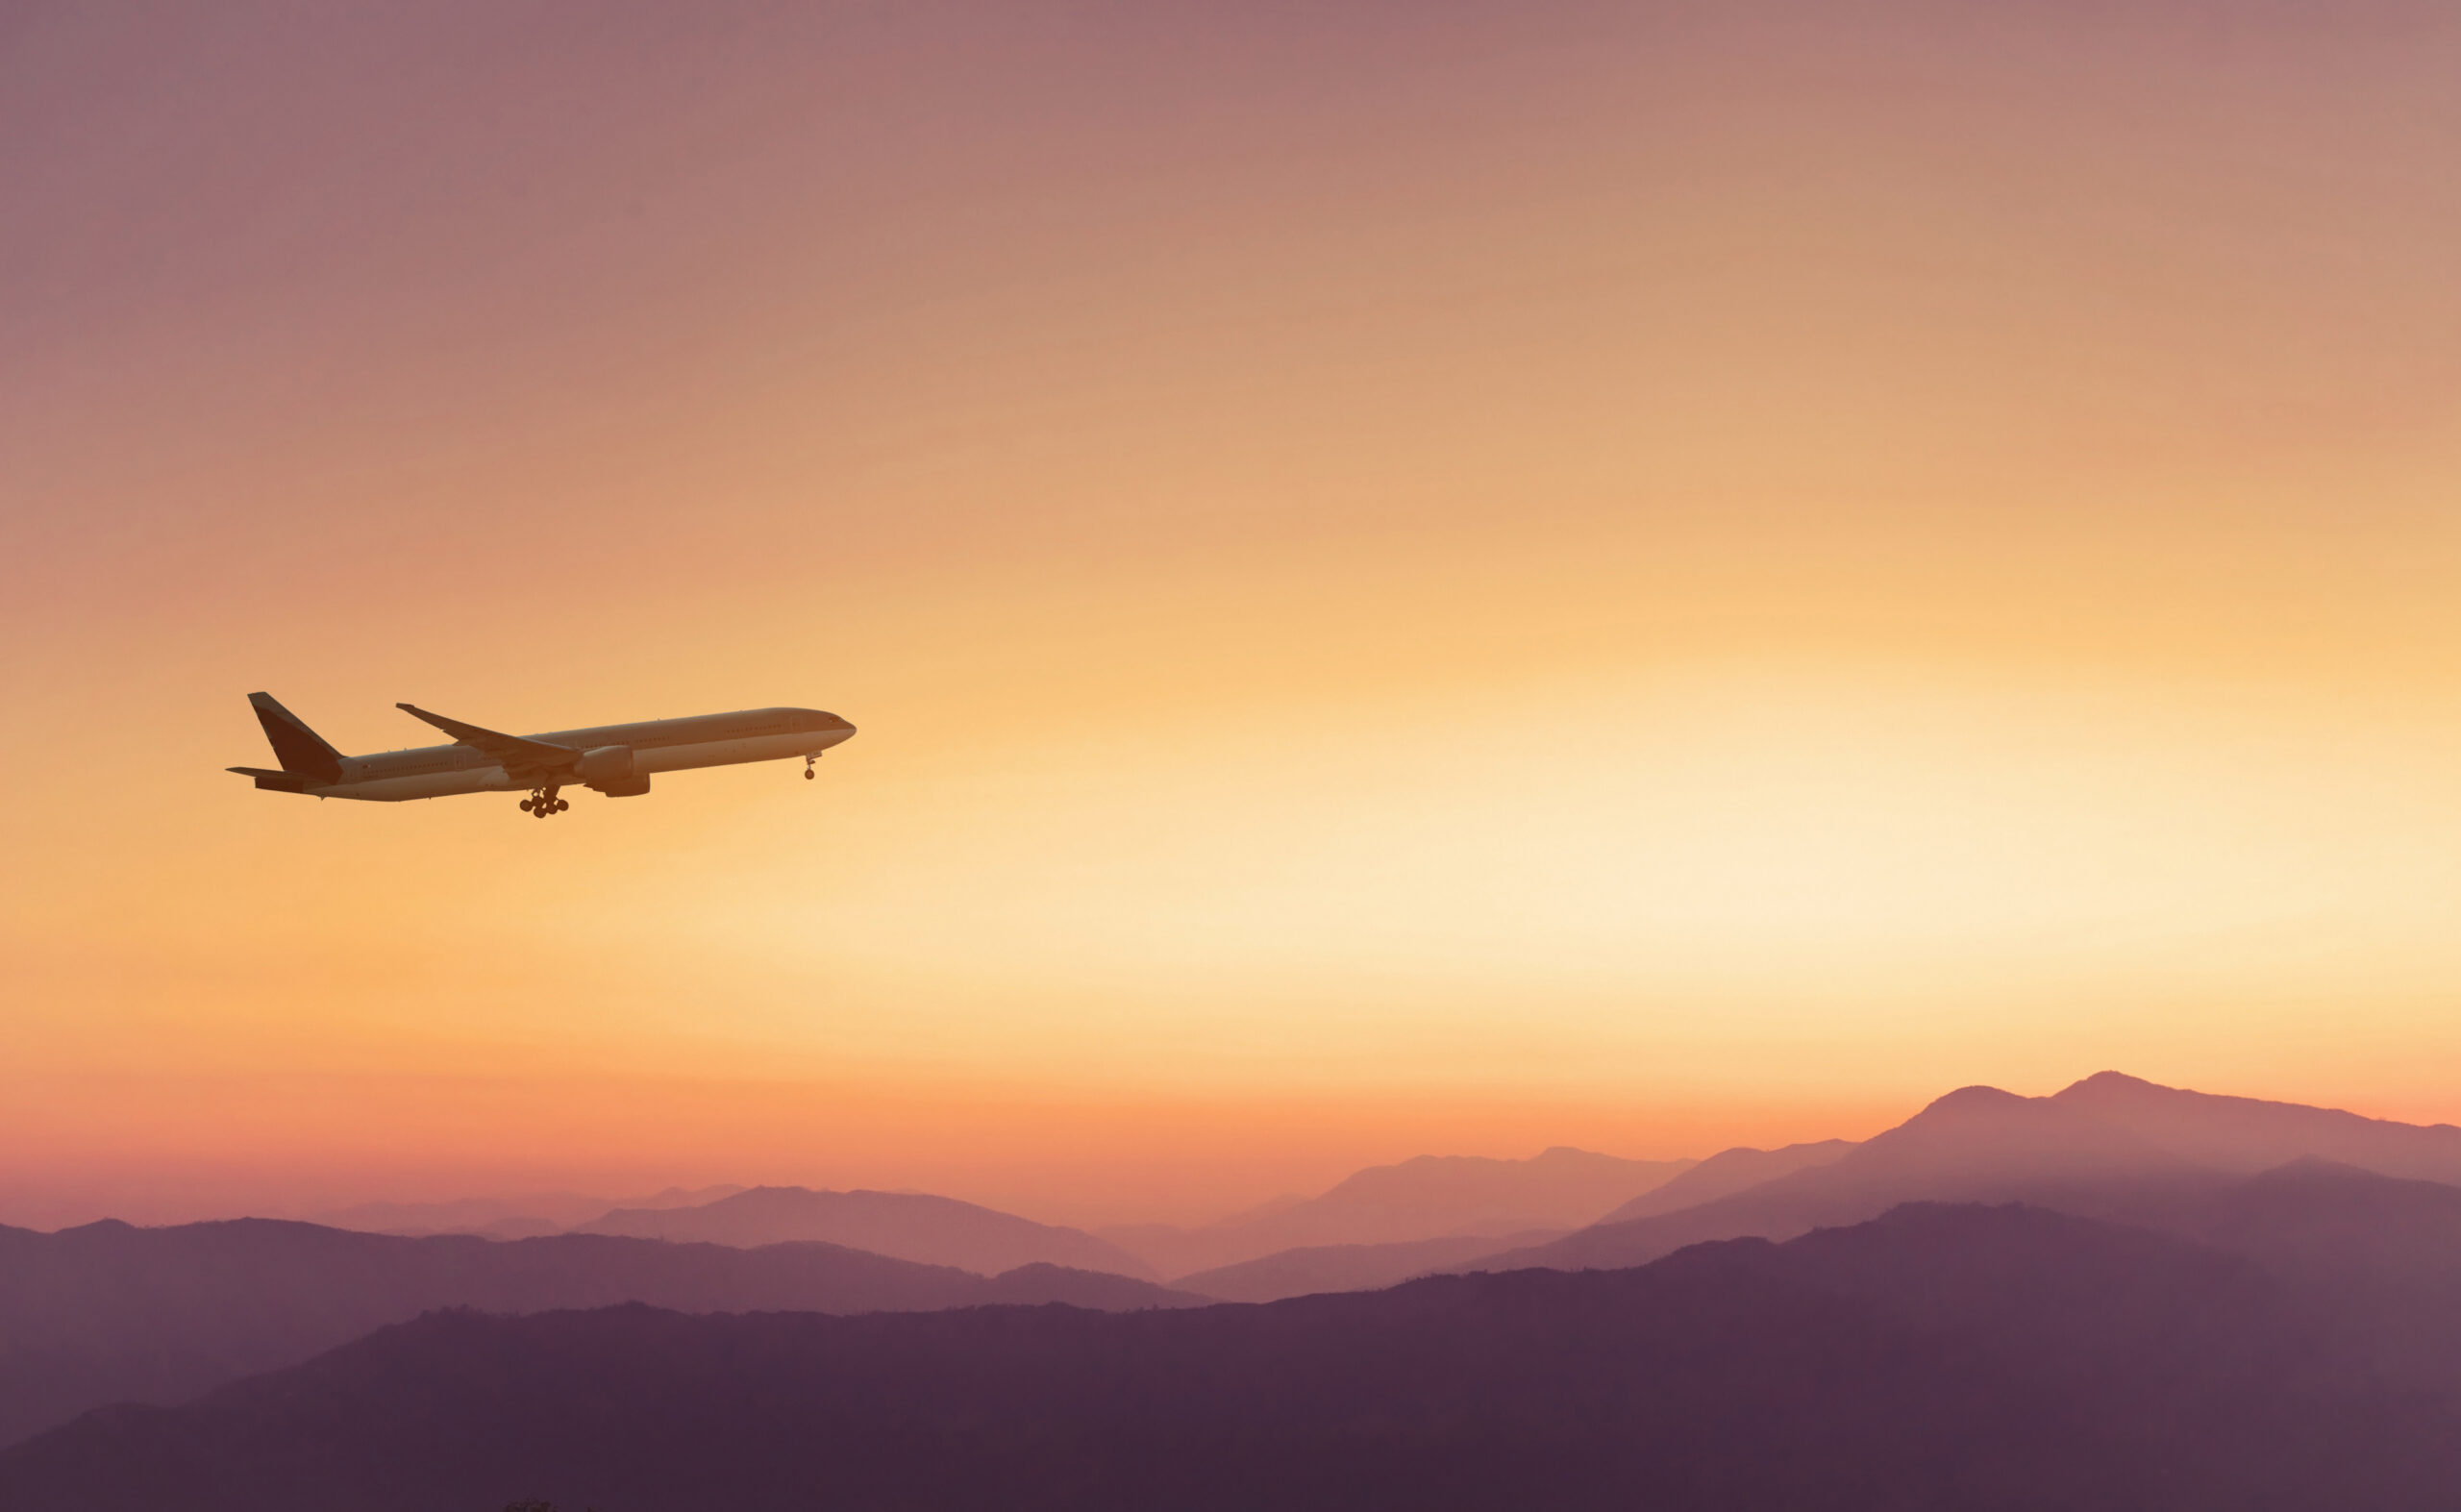 7 ways to reimagine travel incentives